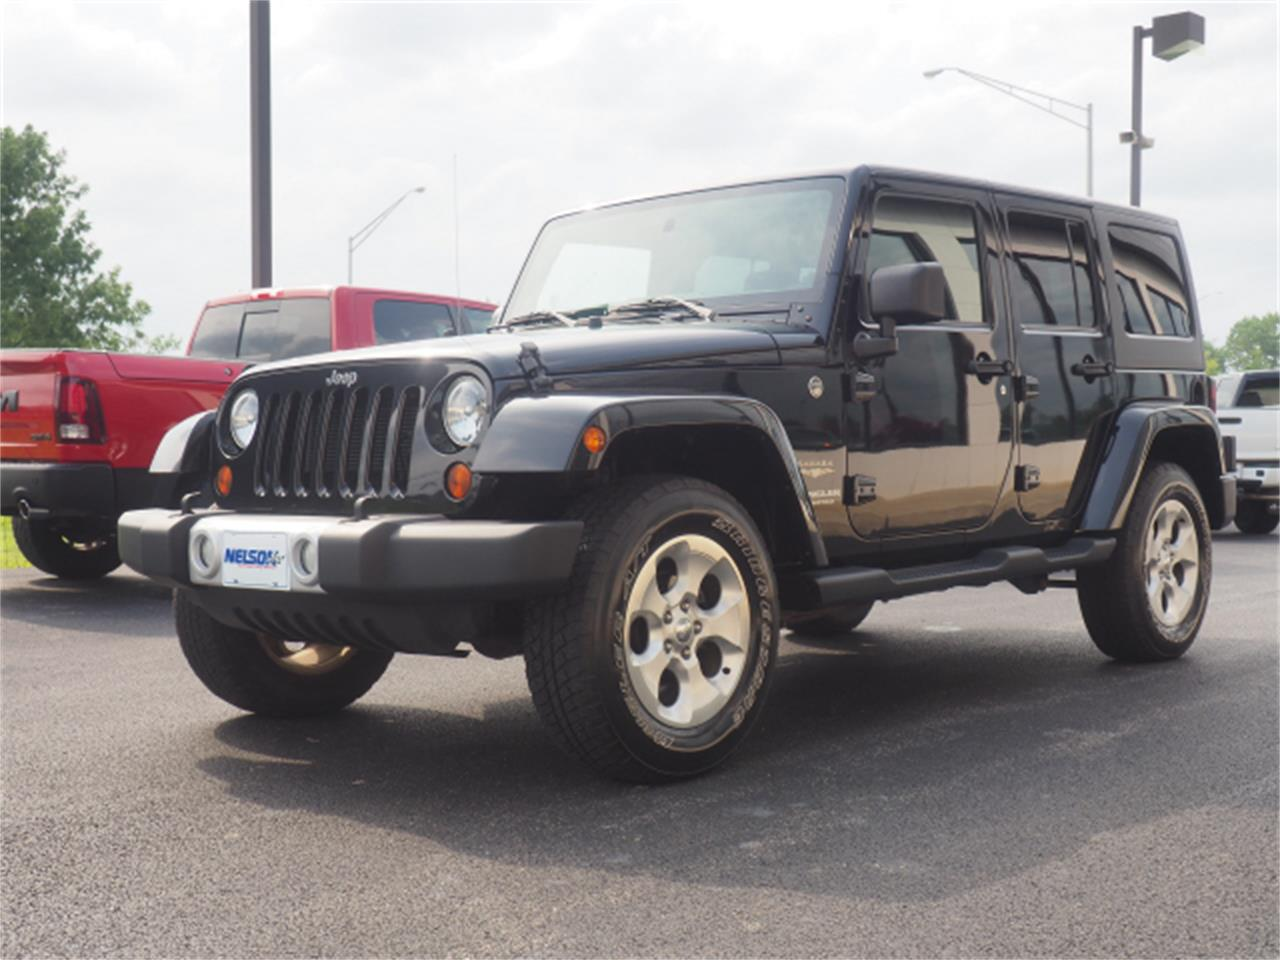 2013 Jeep Wrangler for sale in Marysville, OH – photo 6